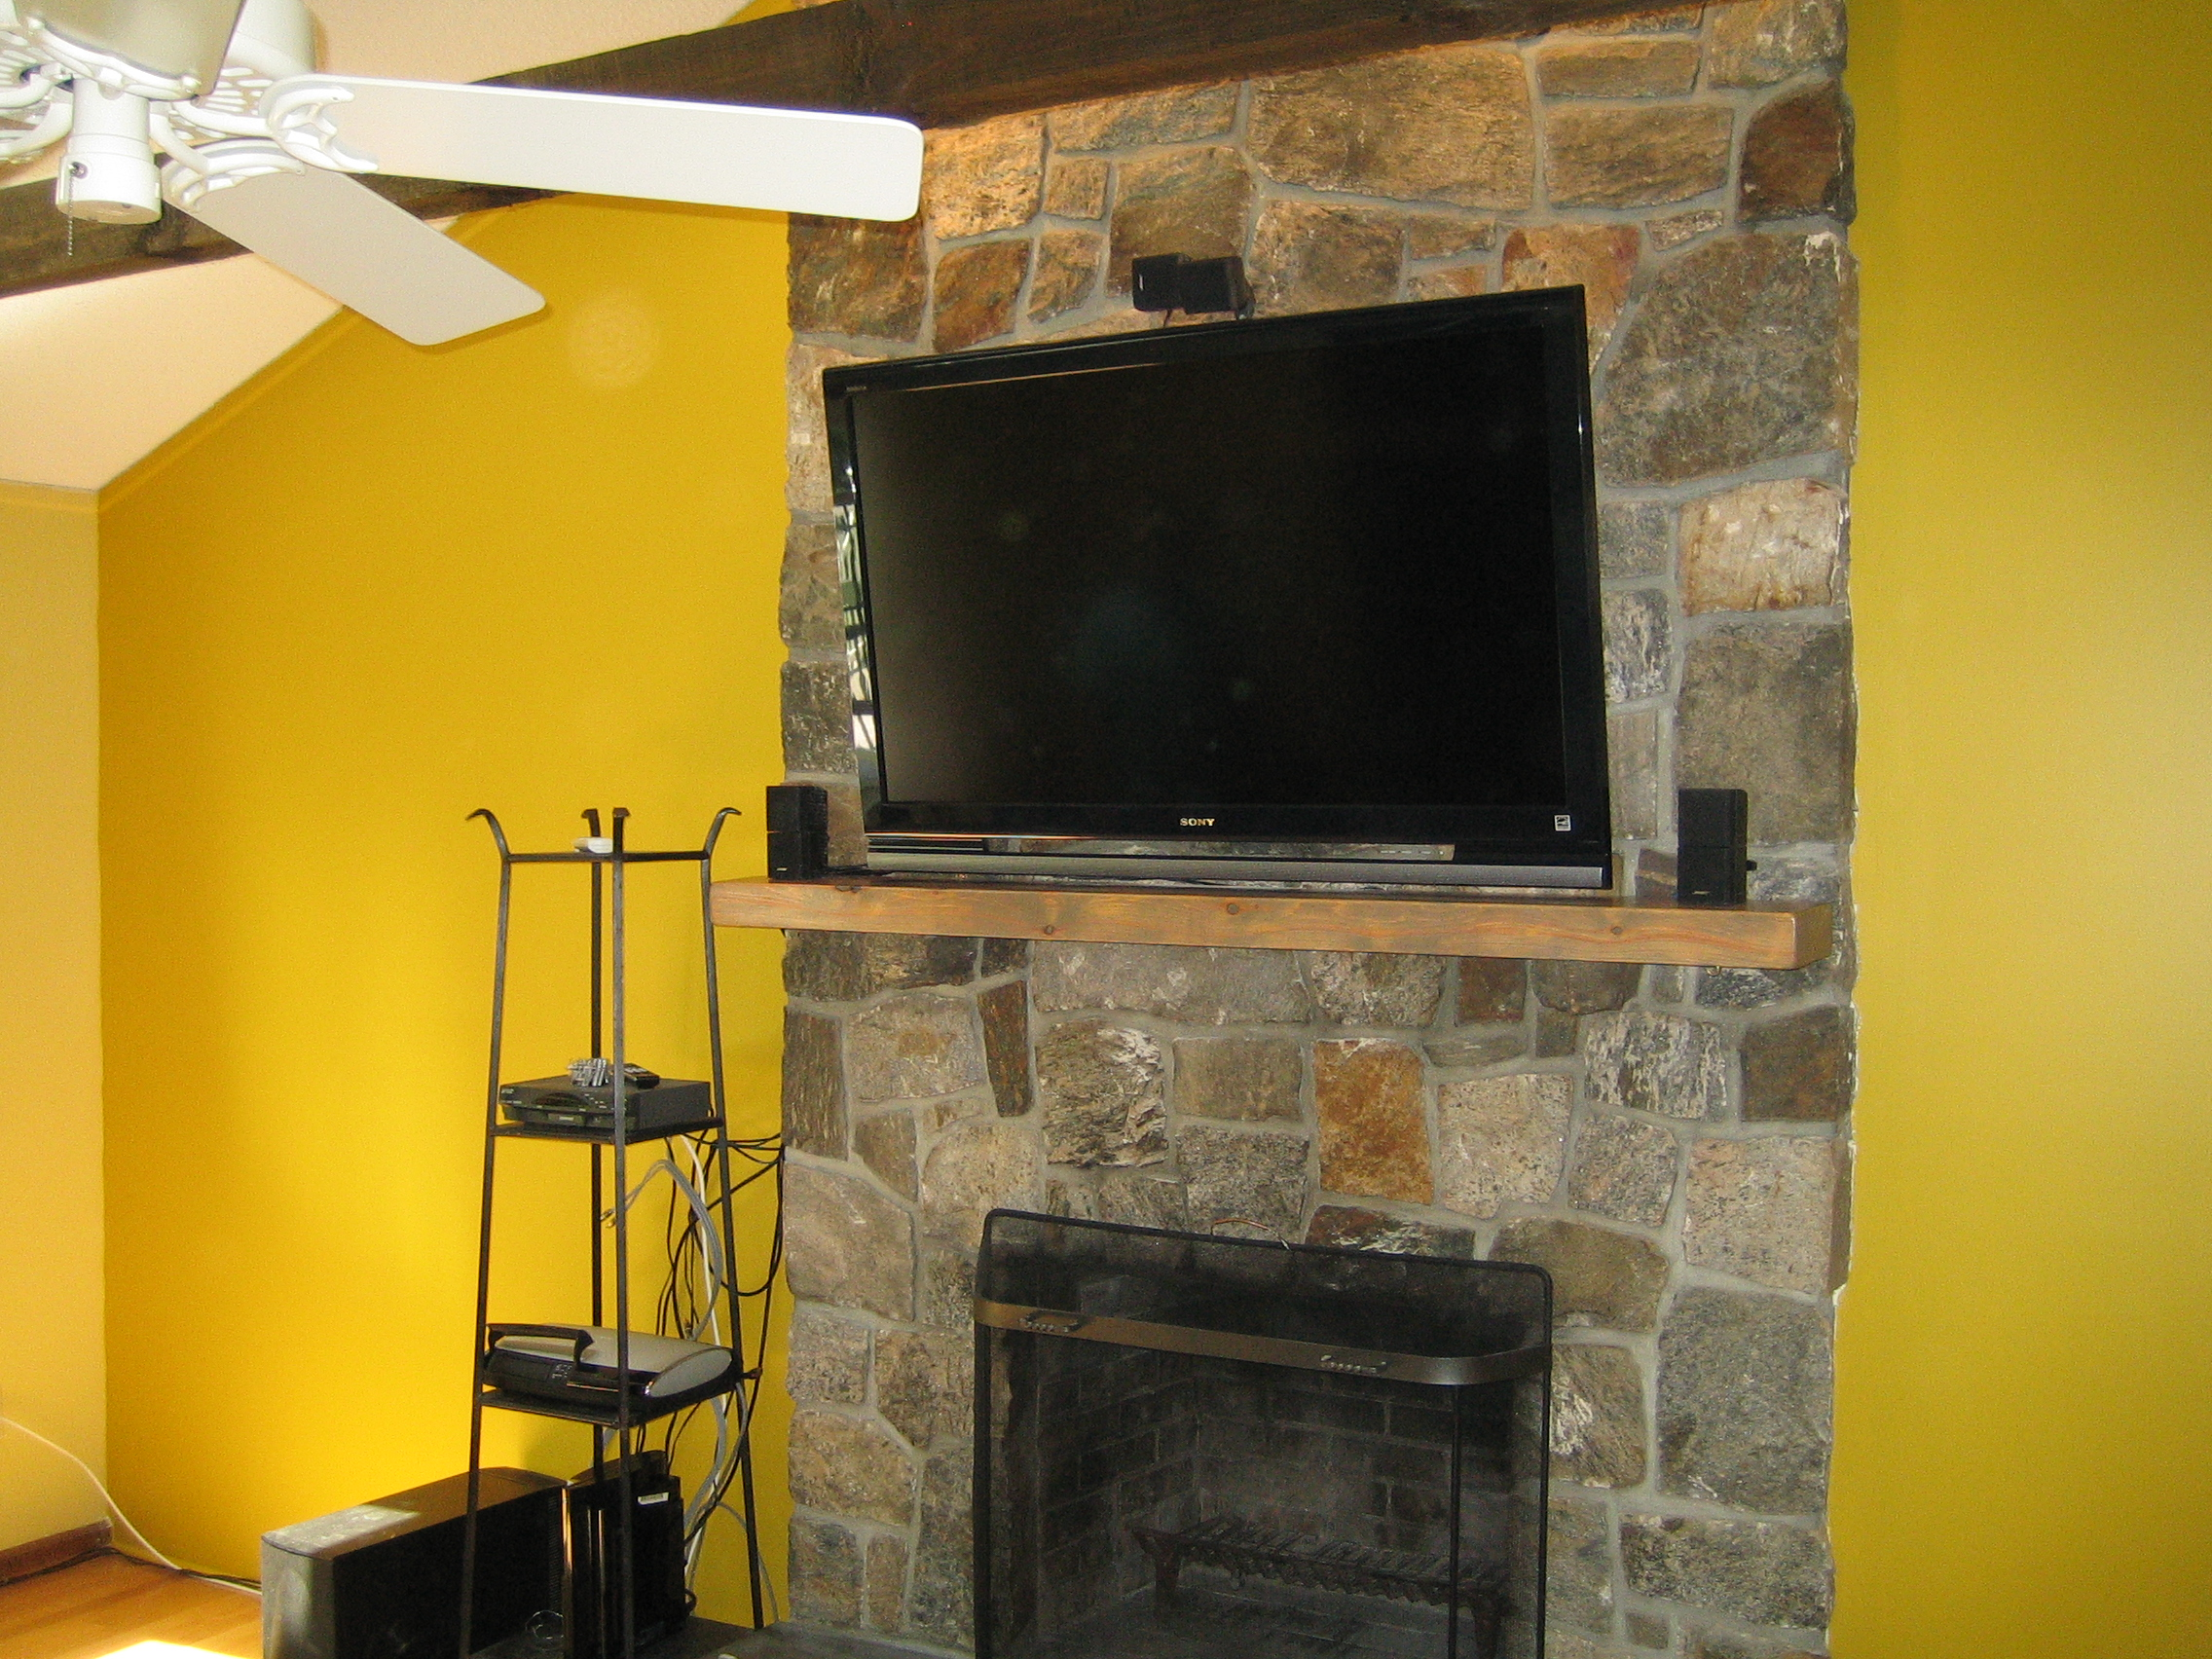 canaan ct tv install on natural stone above fireplace with surround sound home theater. Black Bedroom Furniture Sets. Home Design Ideas